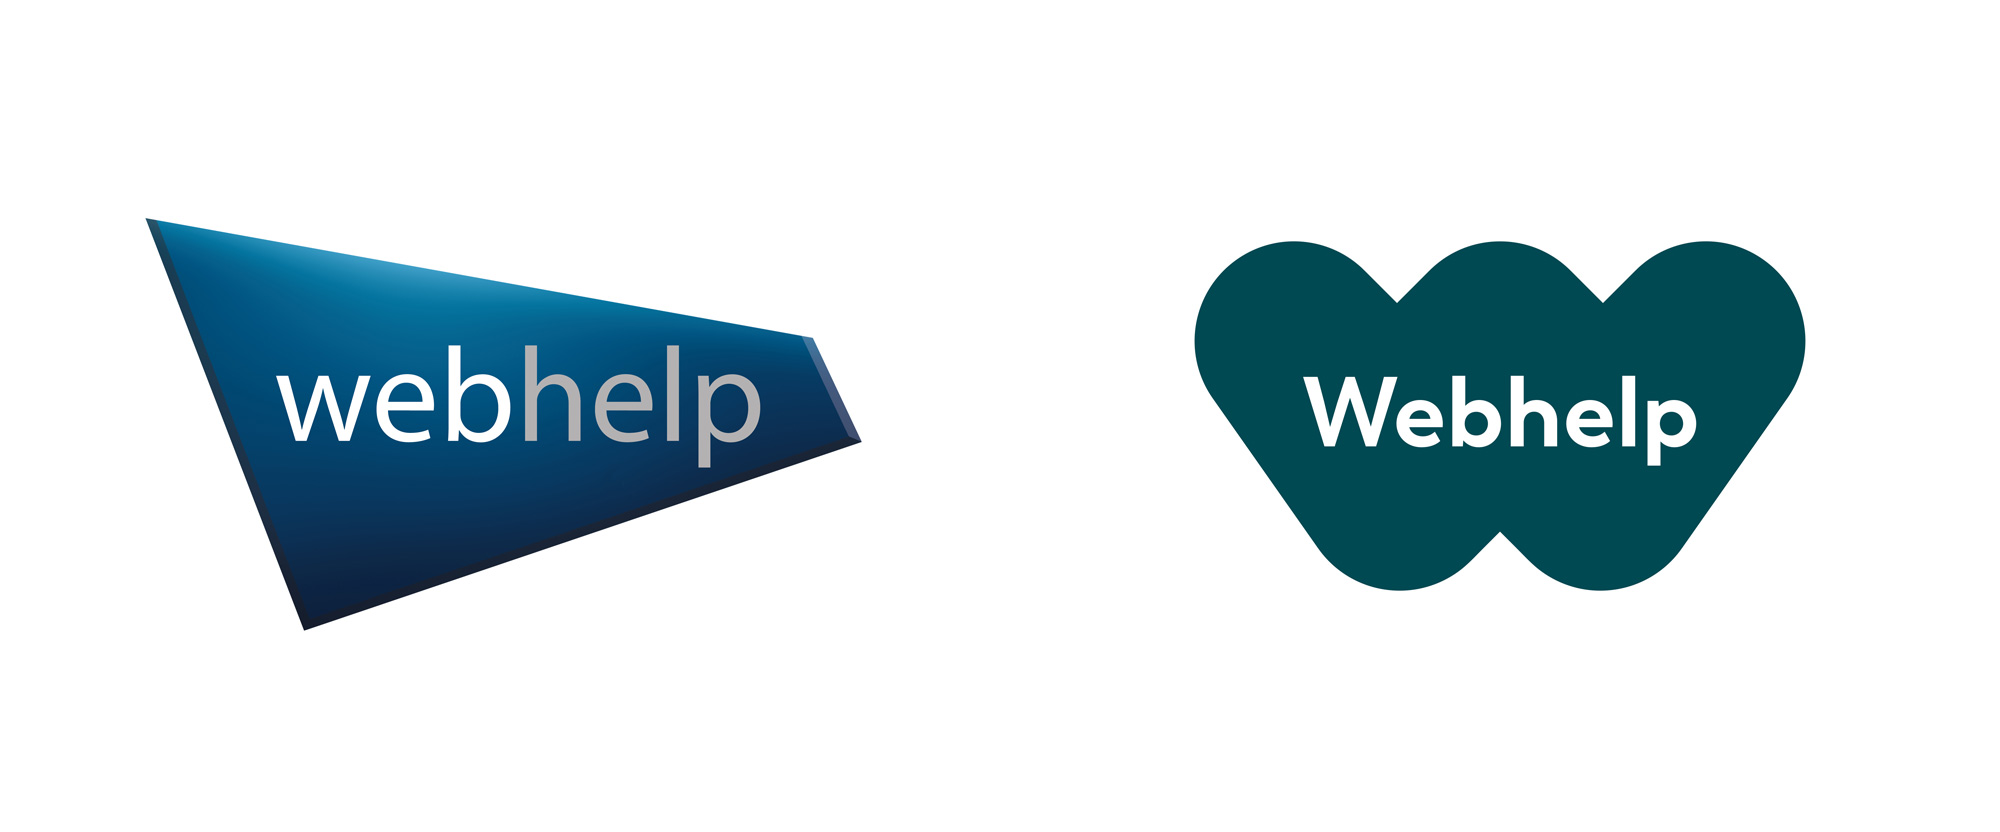 New Logo and Identity for Webhelp by Futurebrand